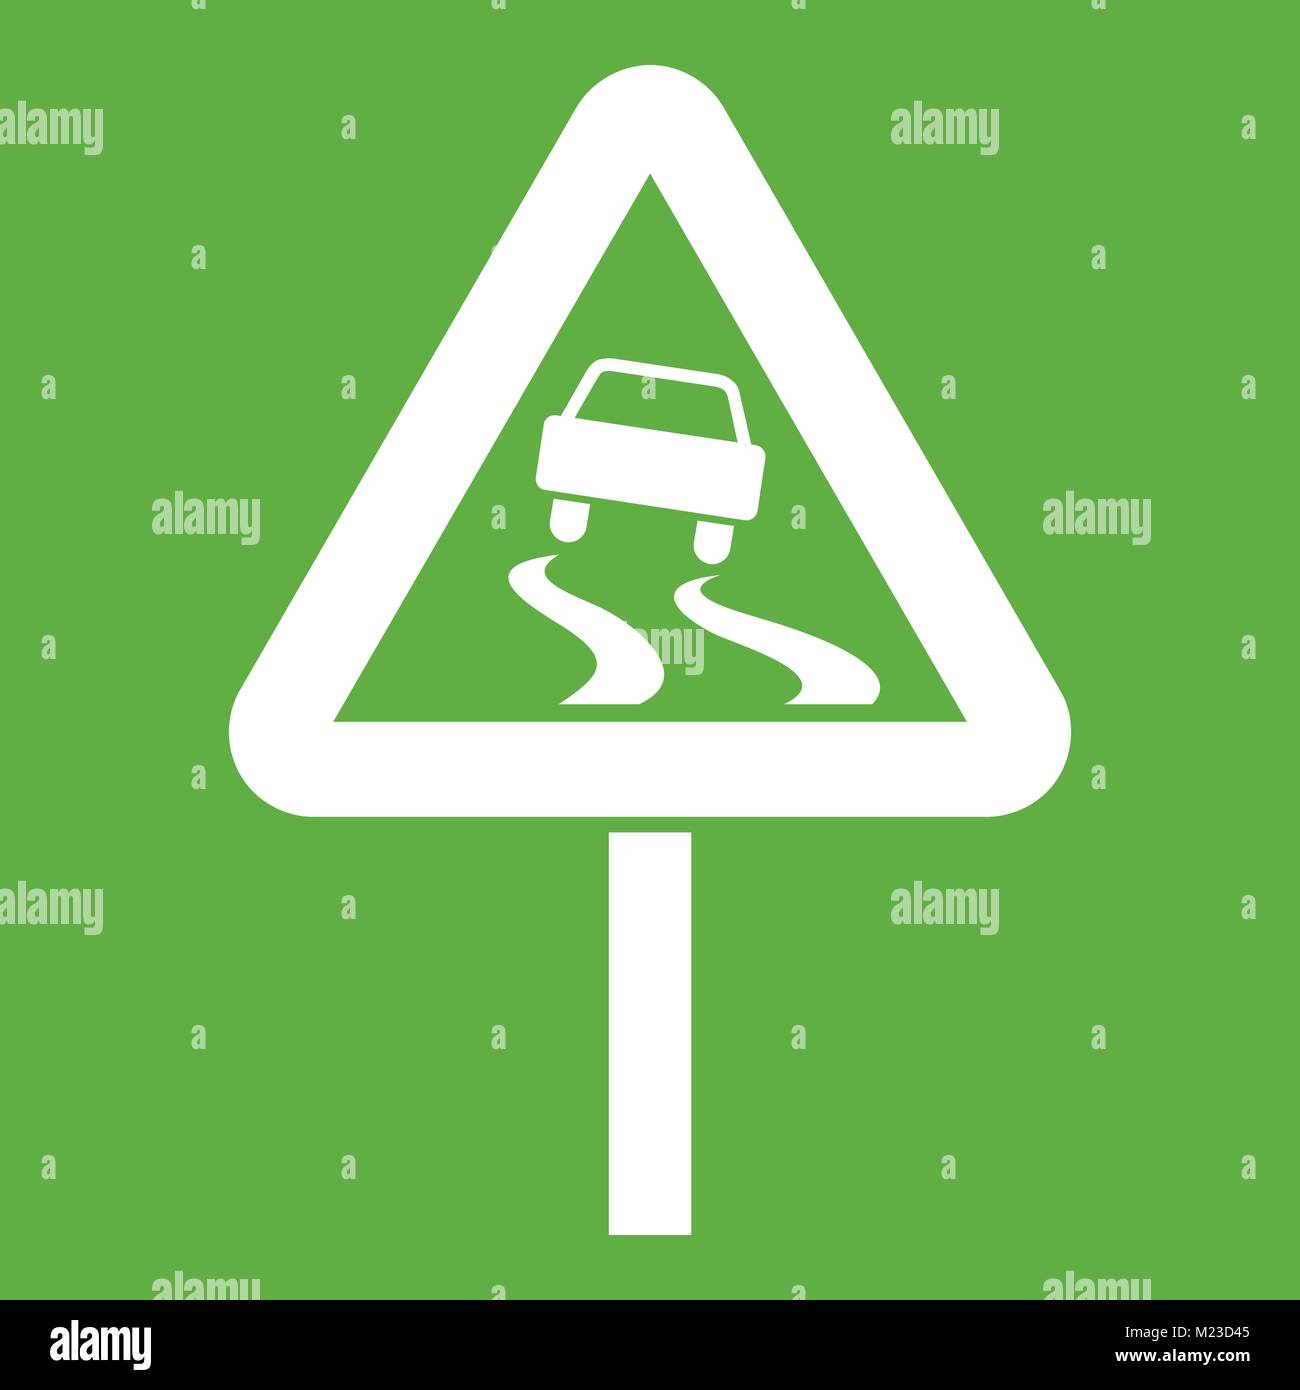 Slippery when wet road sign icon green - Stock Vector